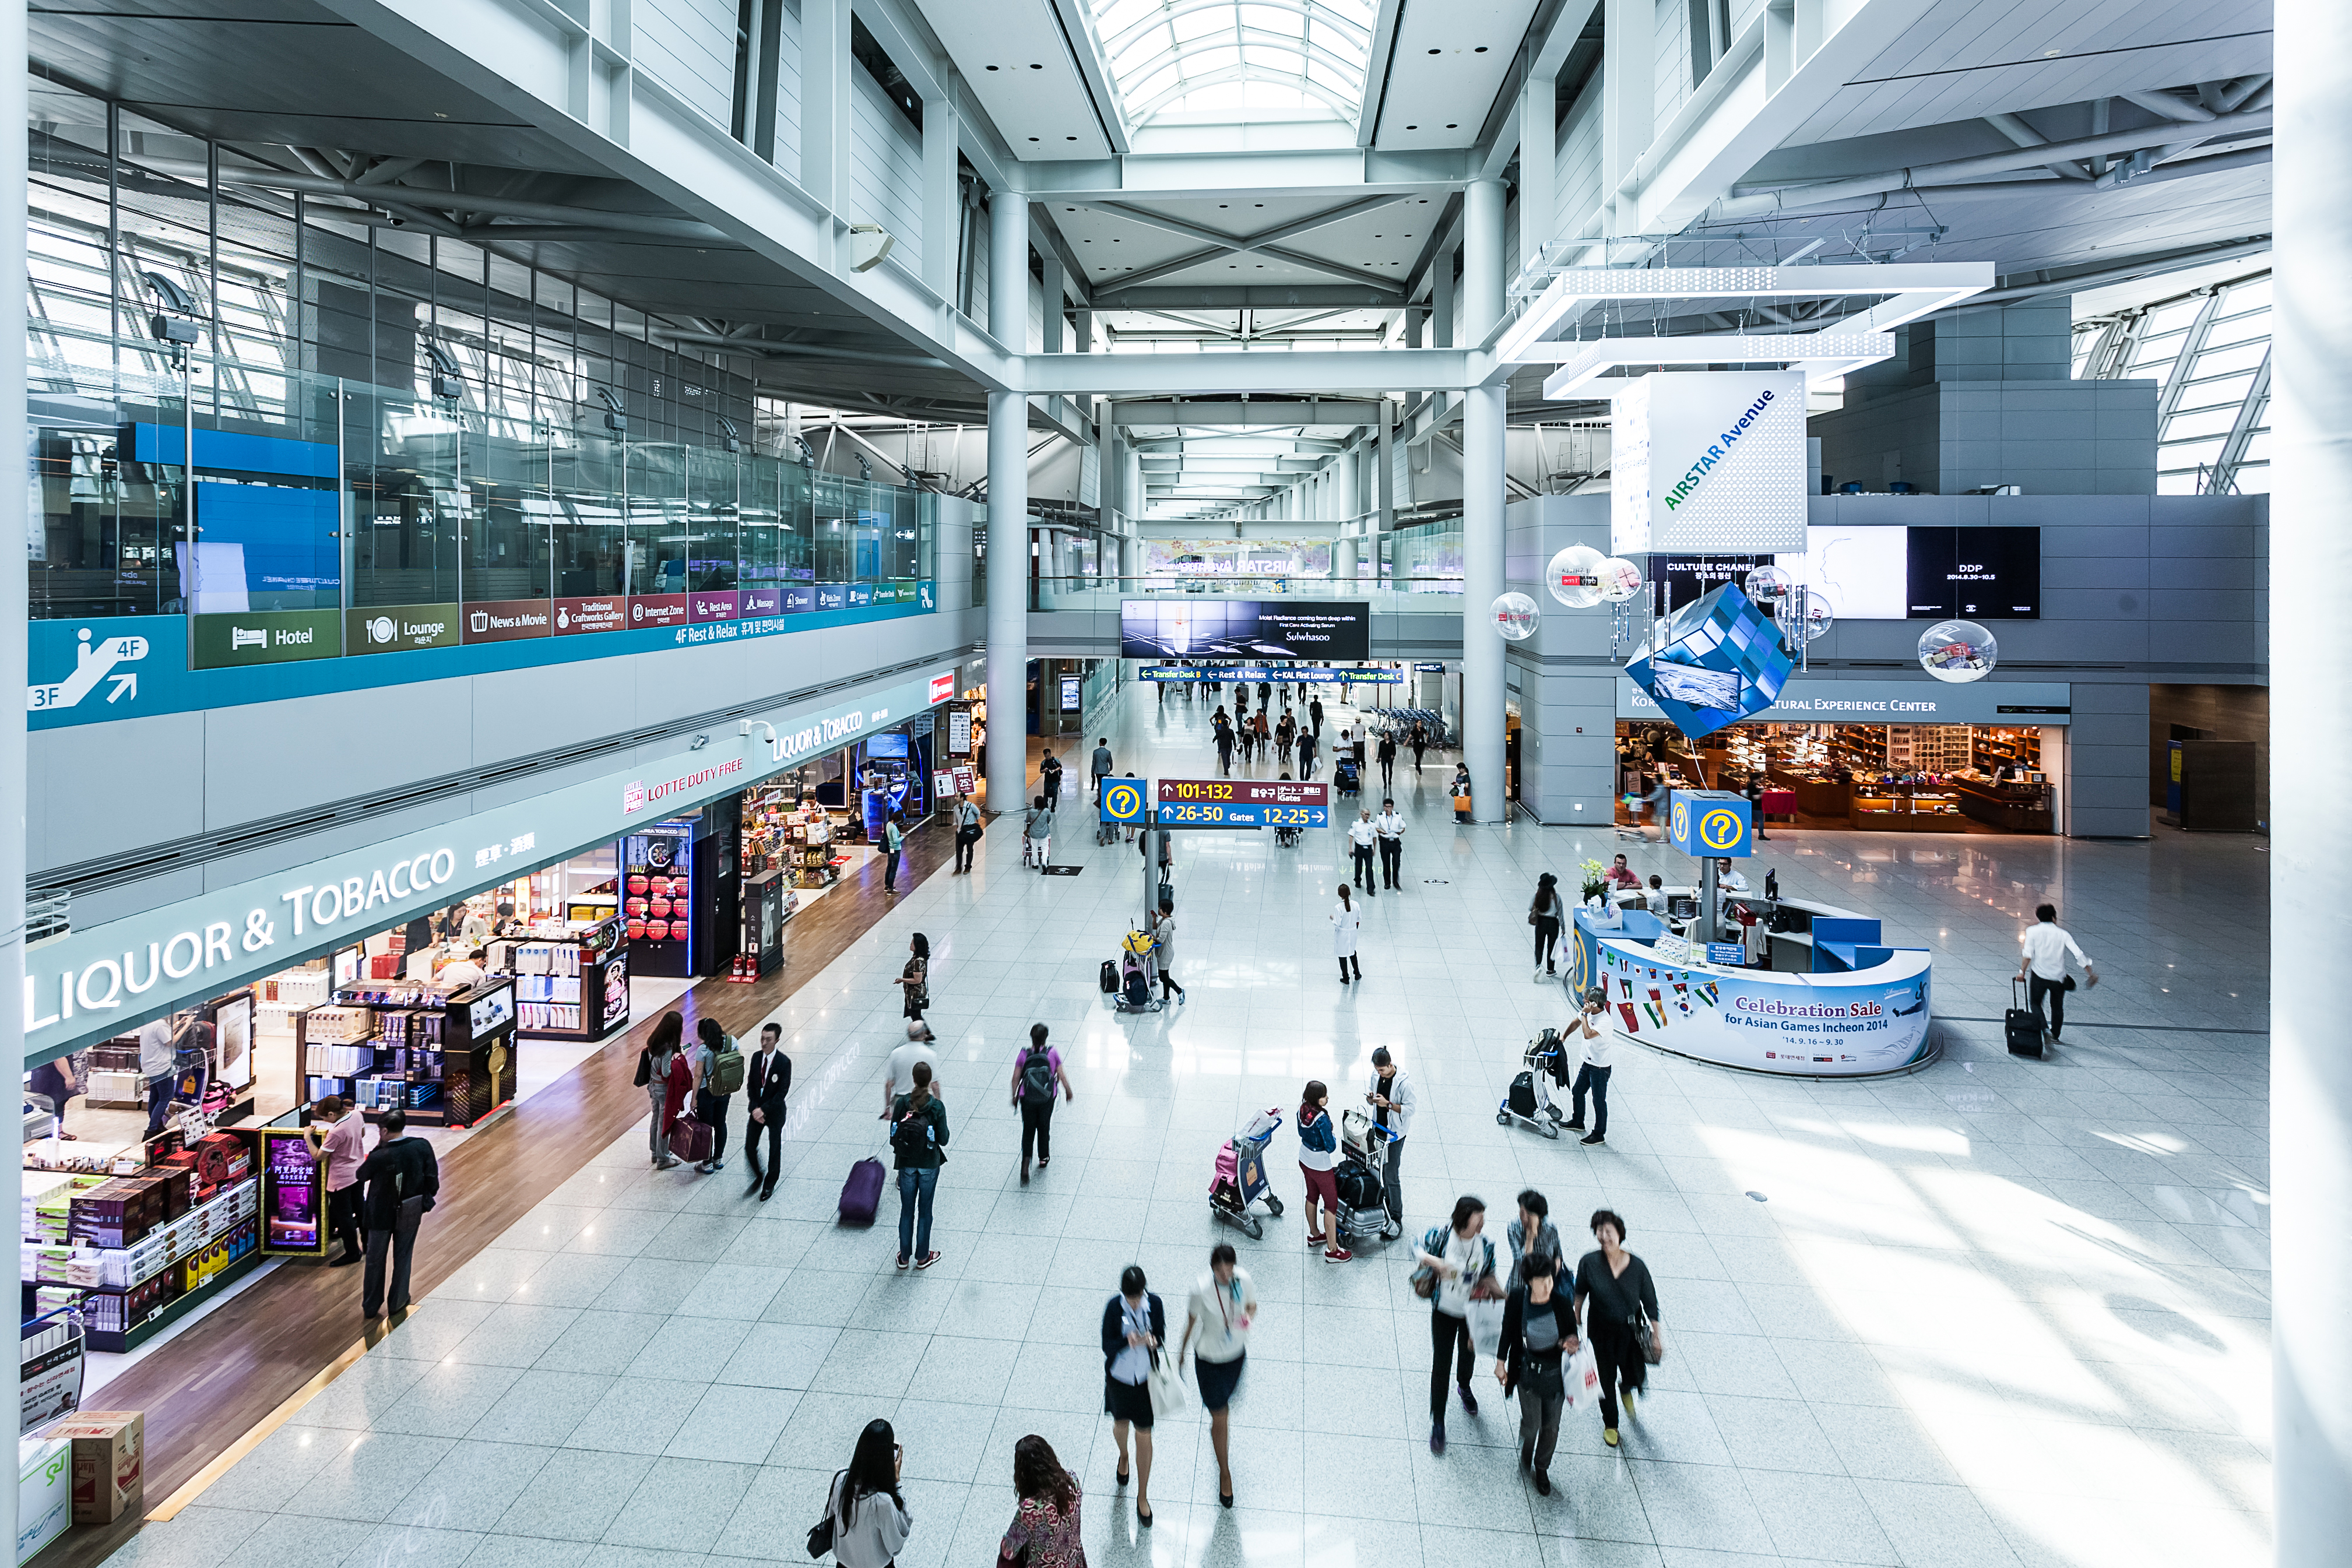 [UPDATED] Incheon Airp...